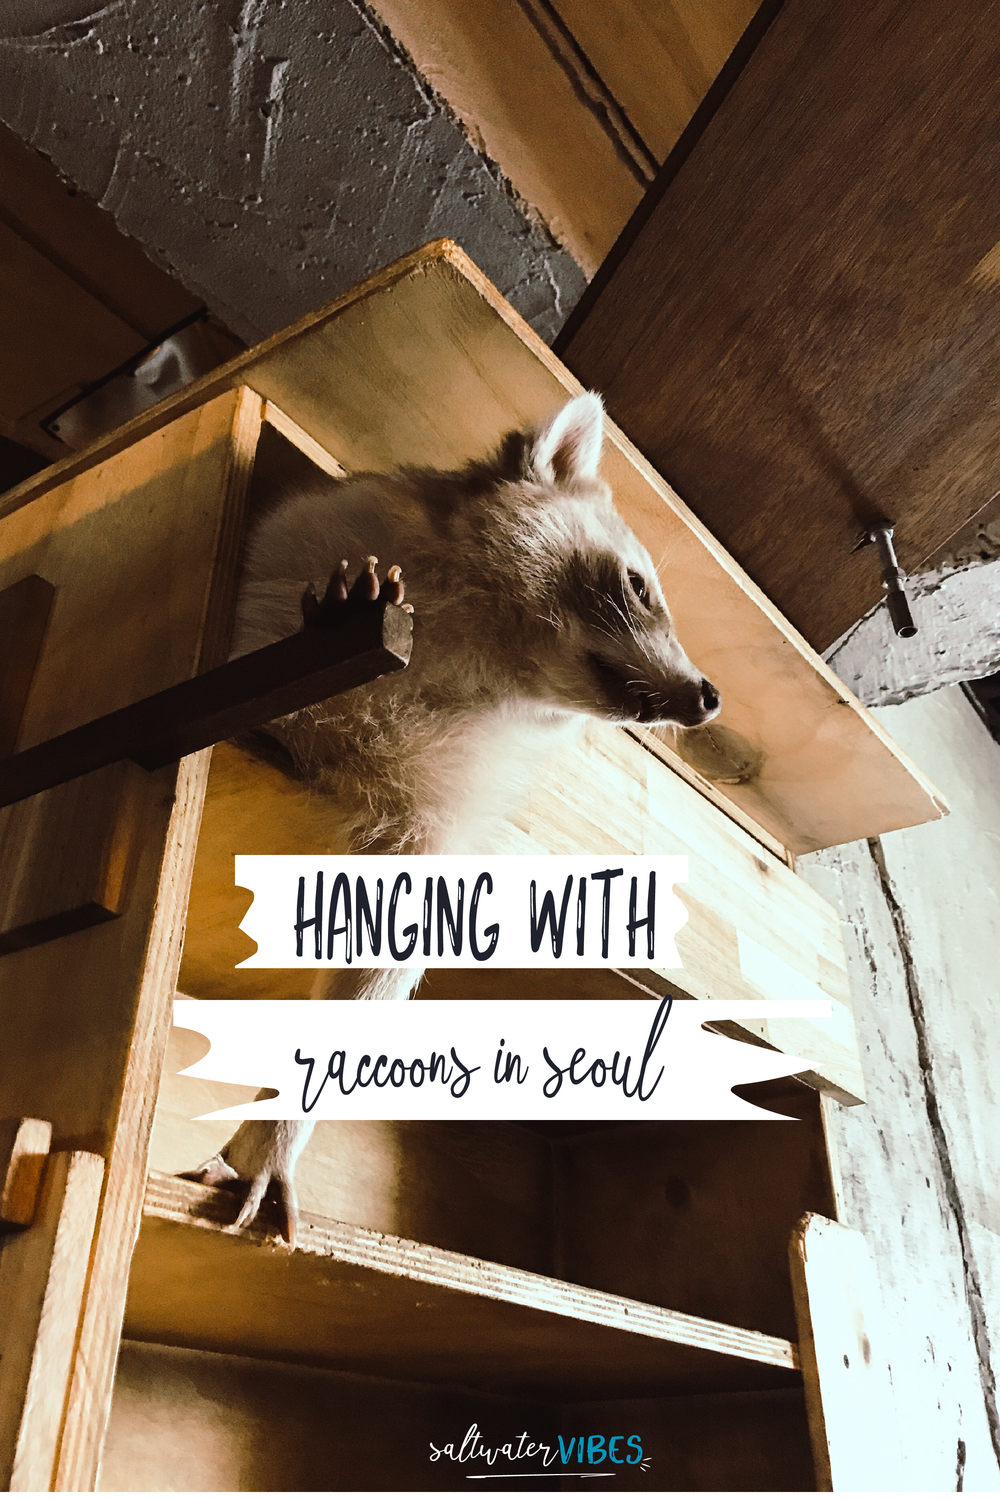 The Seoul Raccoon Cafe | SaltWaterVibes